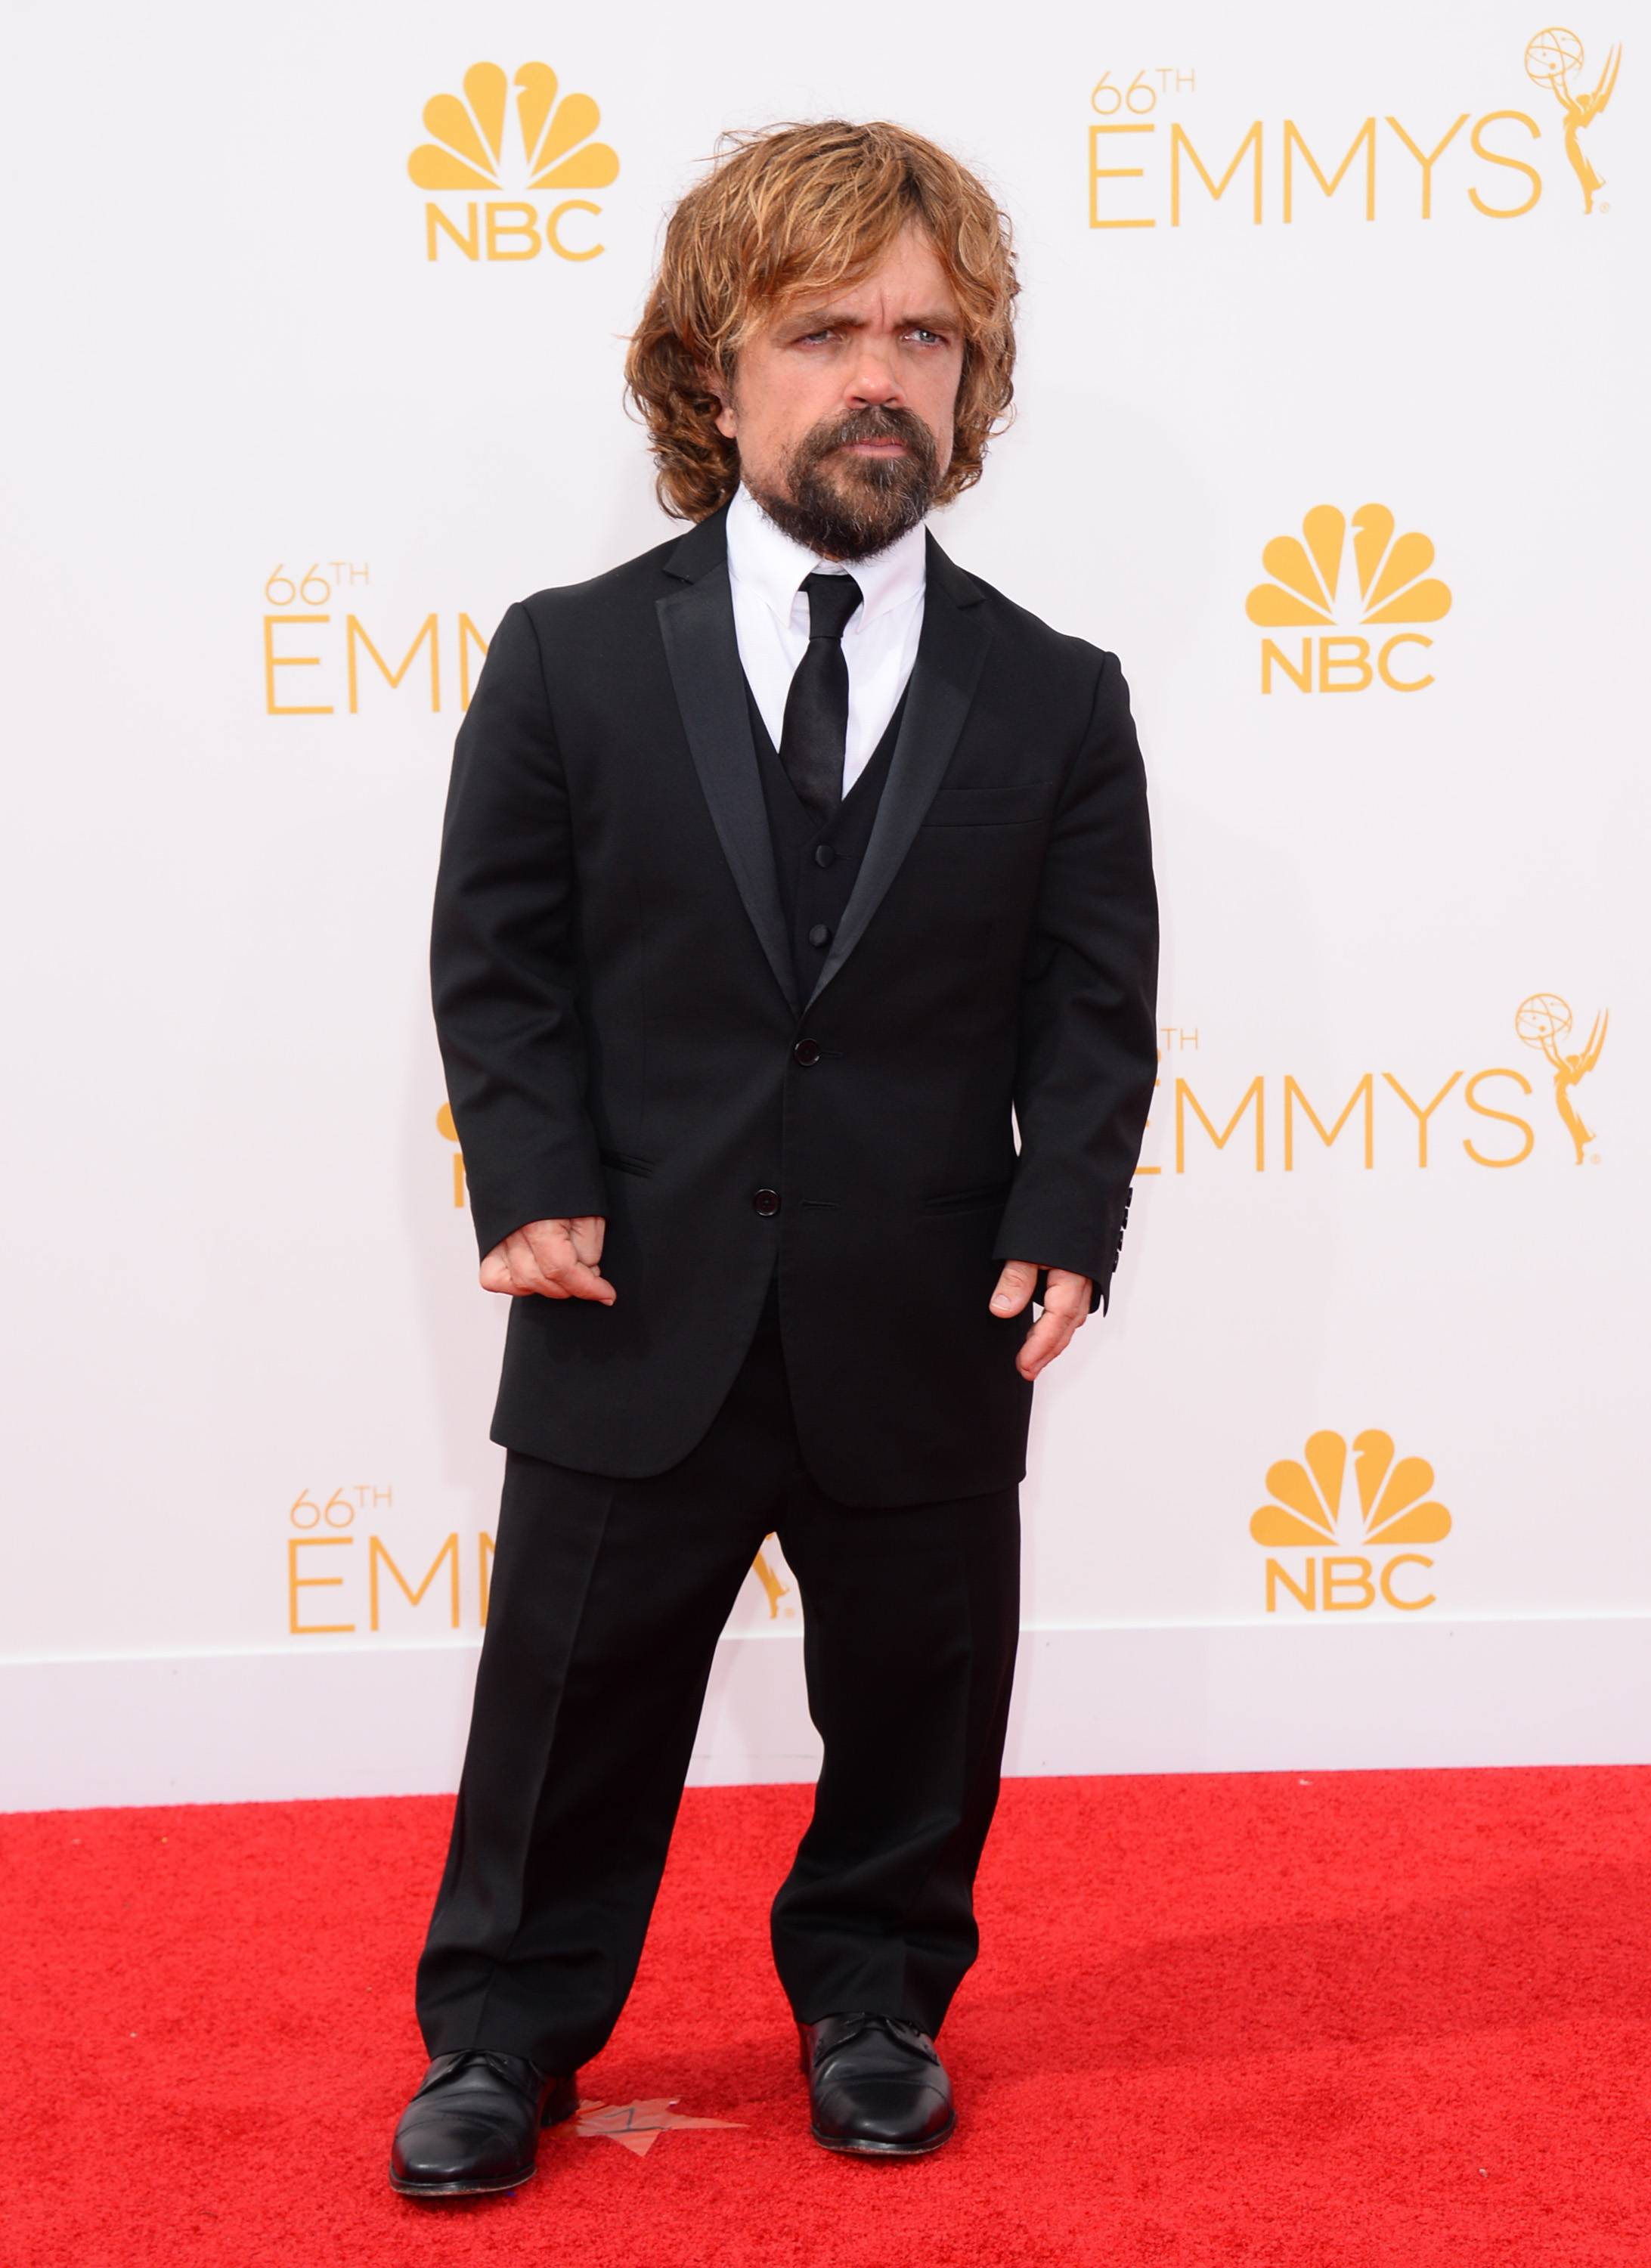 Peter Dinklage arrives at the 66th Annual Primetime Emmy Awards at the Nokia Theatre.